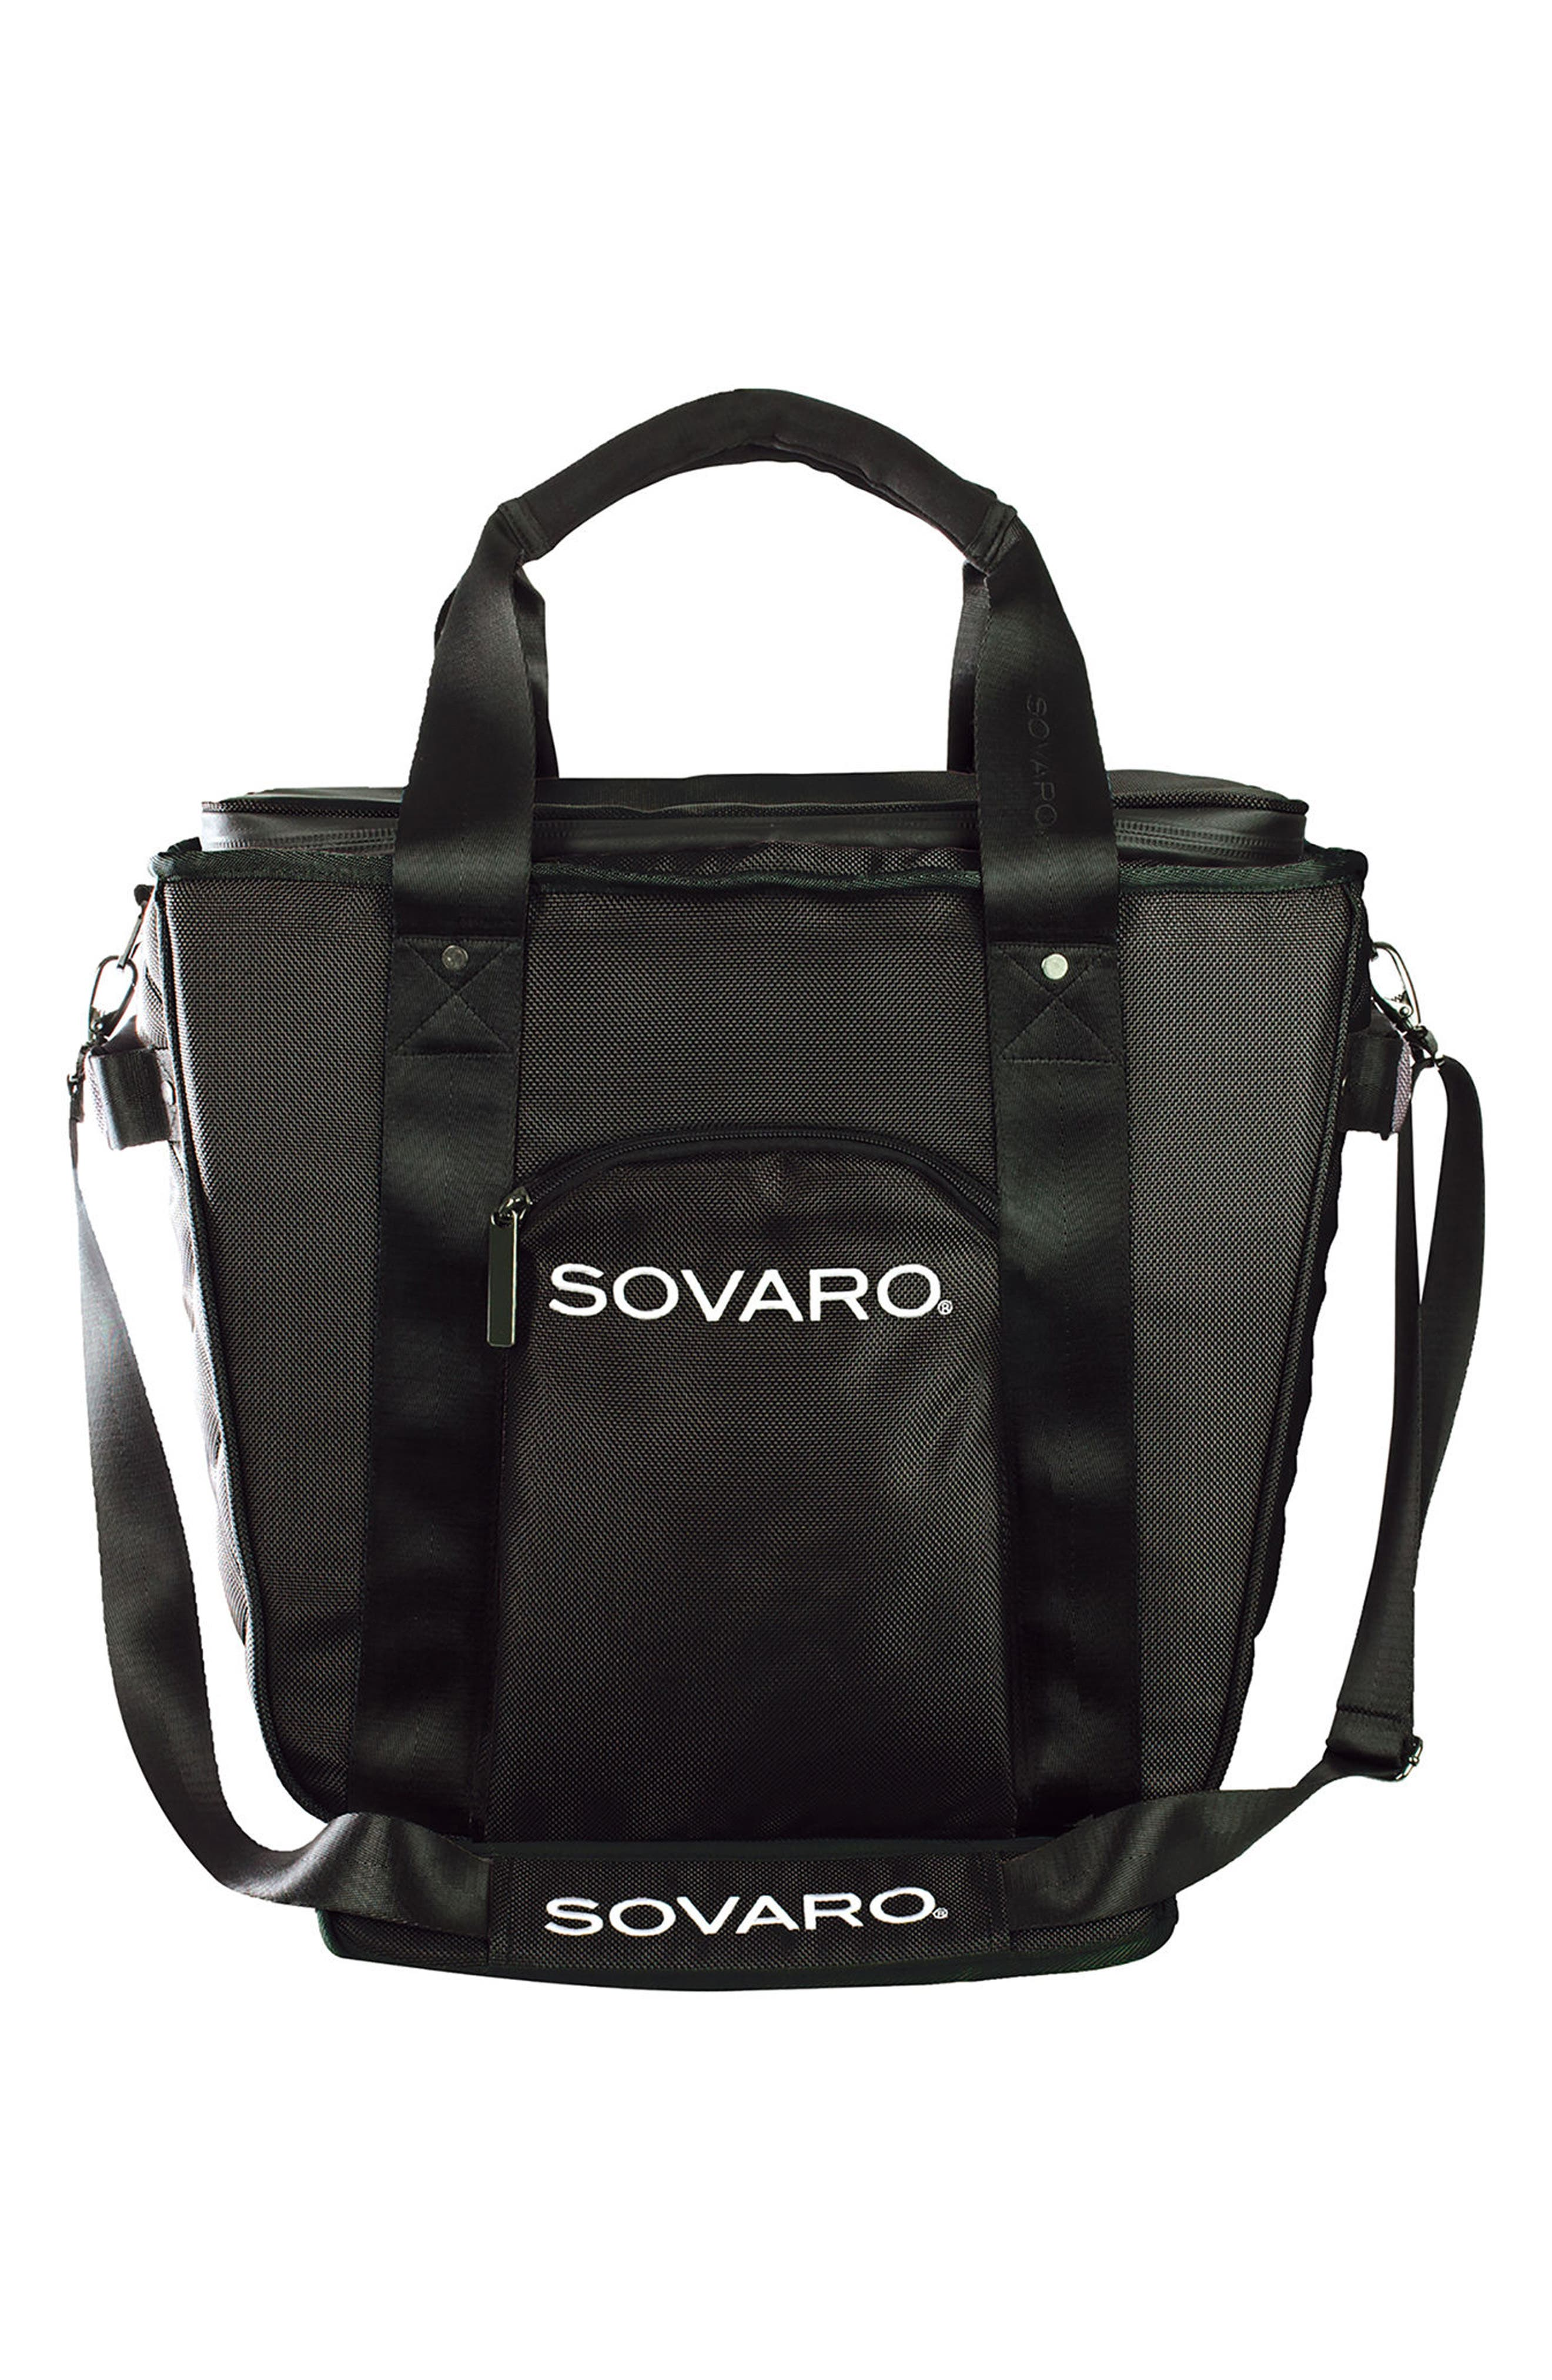 Sovaro 18-Inch Soft Sided Cooler